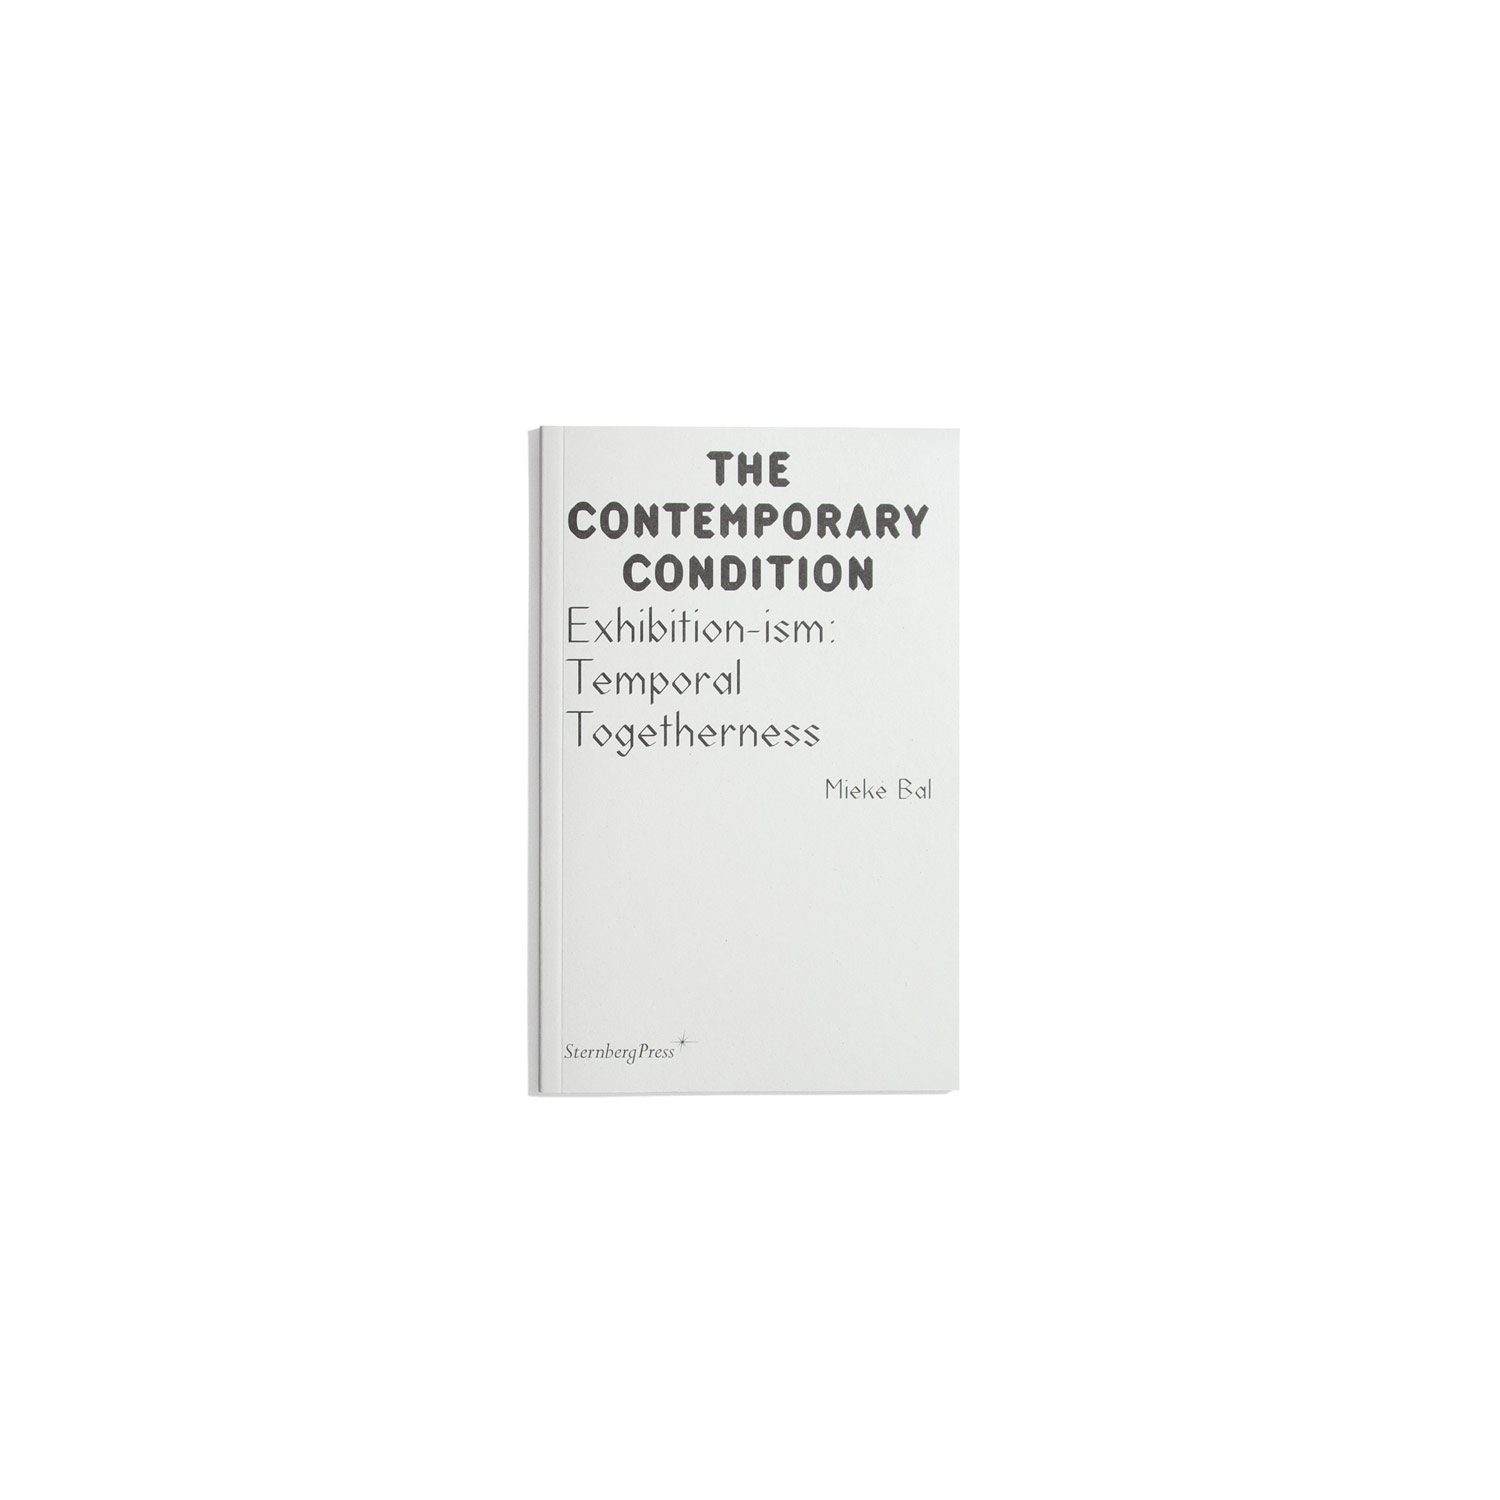 The Contemporary Condition #15 - Exhibition-ism: Temporal Togetherness - Mieke Bal